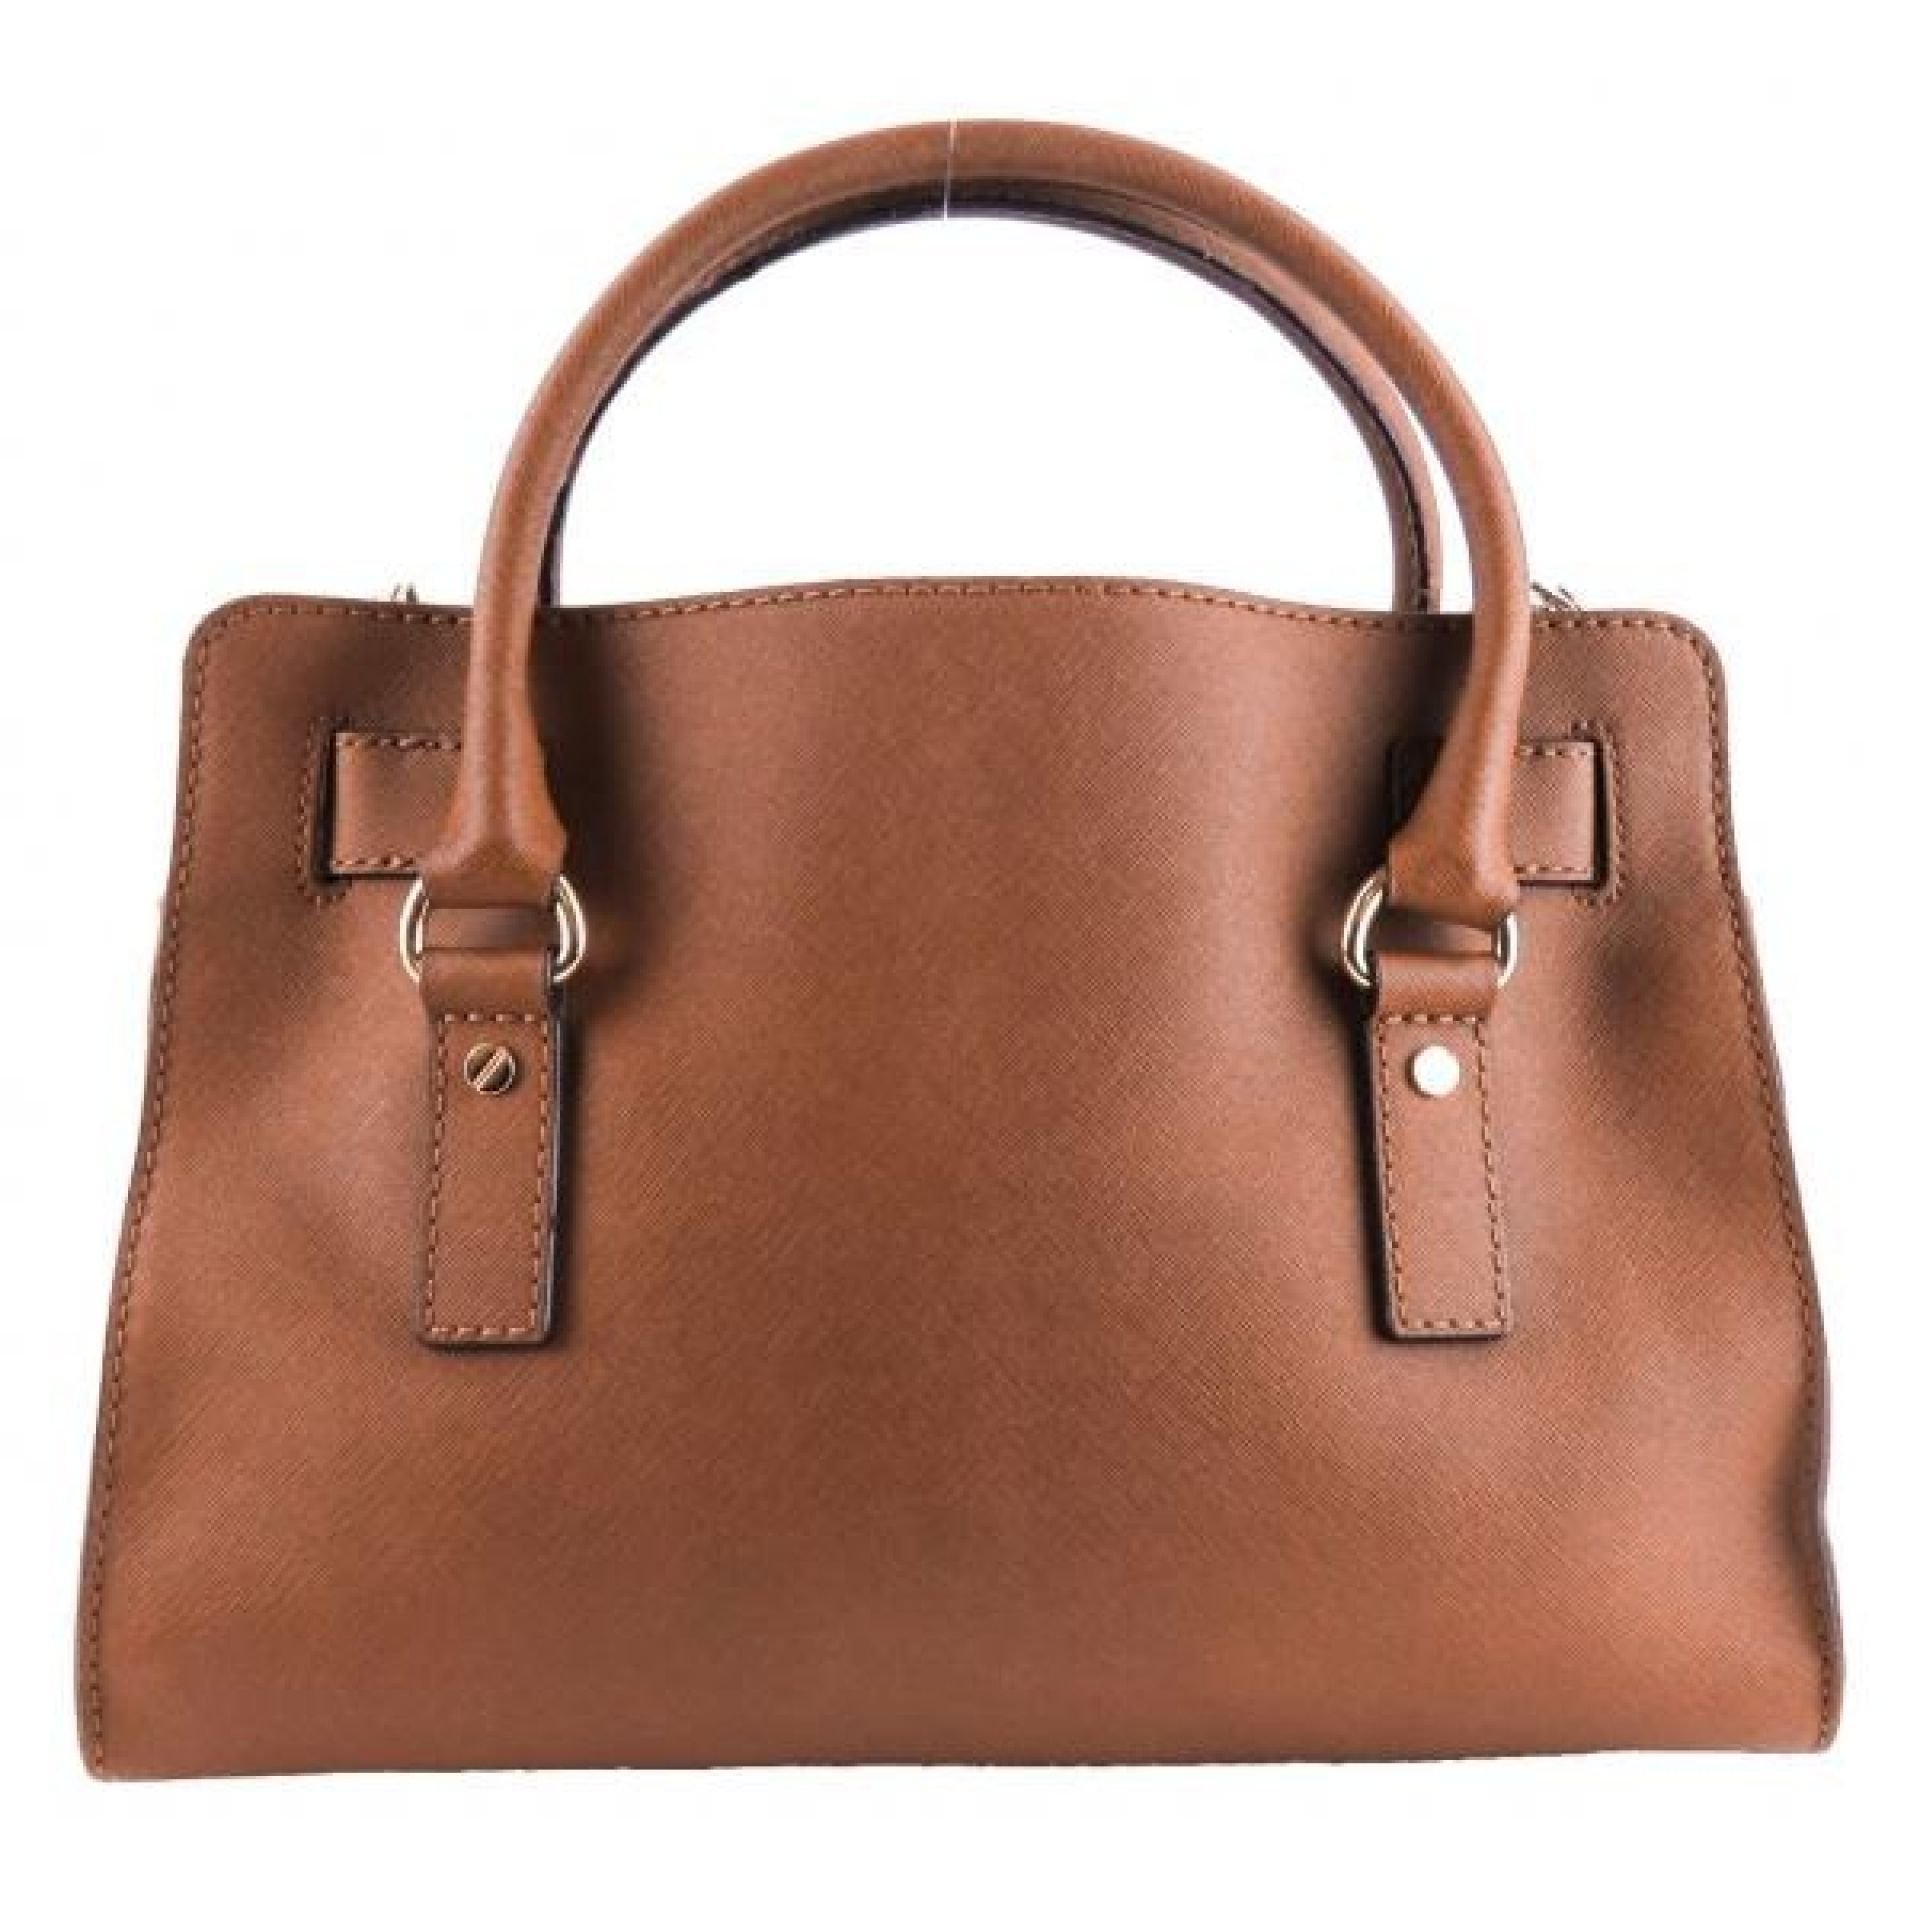 MICHAEL Michael Kors Brown Saffiano Leather Hamilton East West Satchel Bag